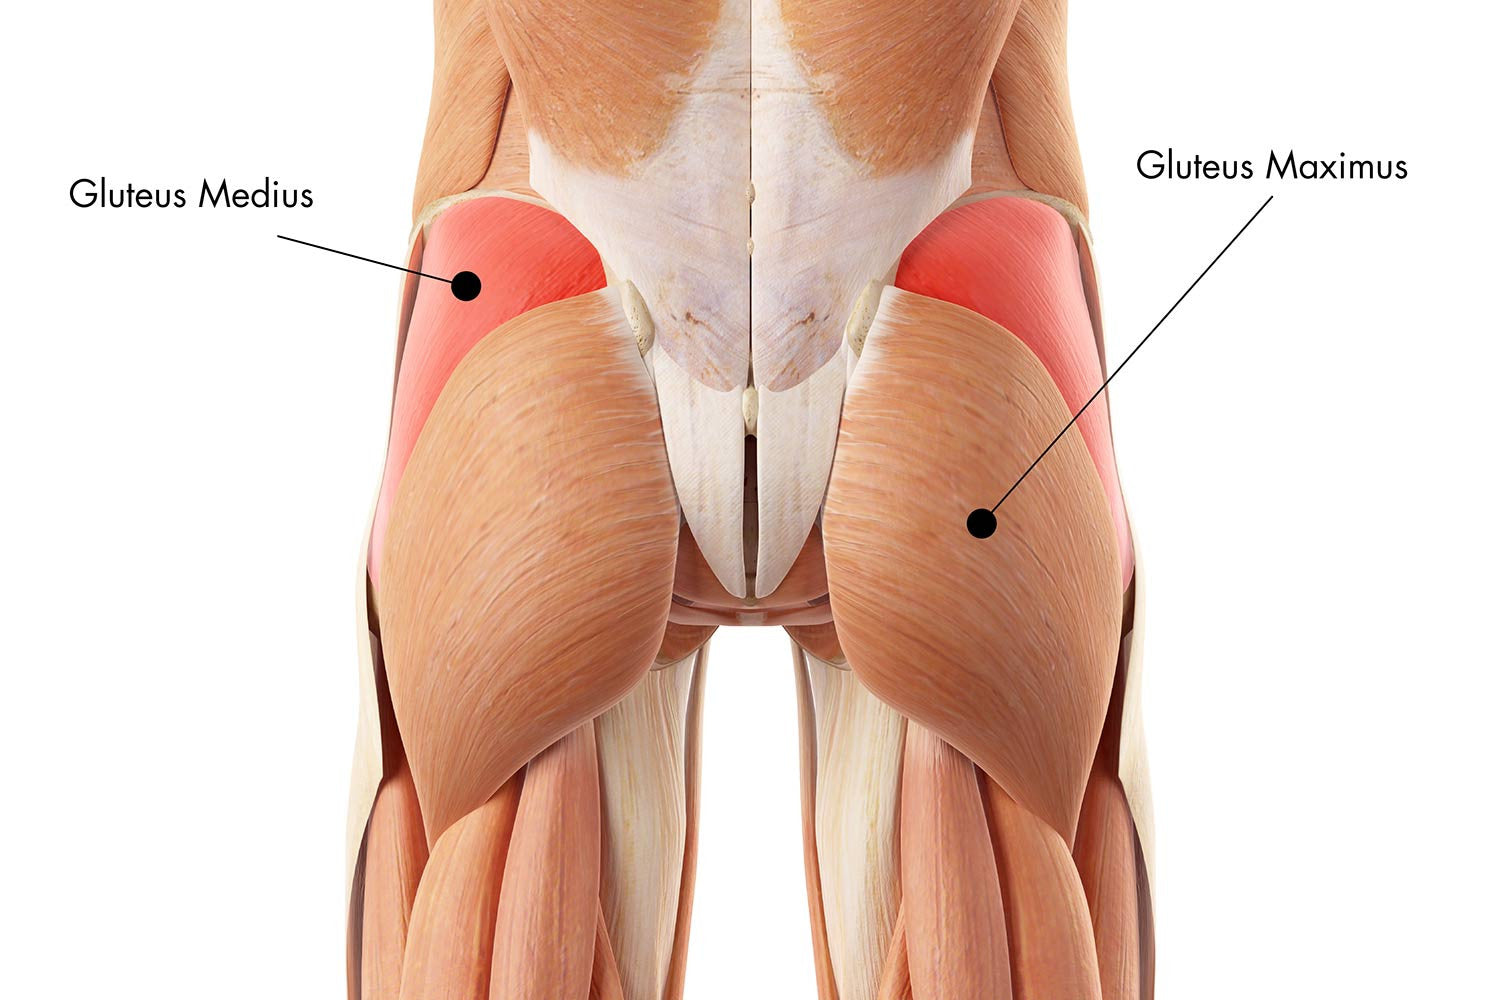 Diagram of gluteus medius muscle structure